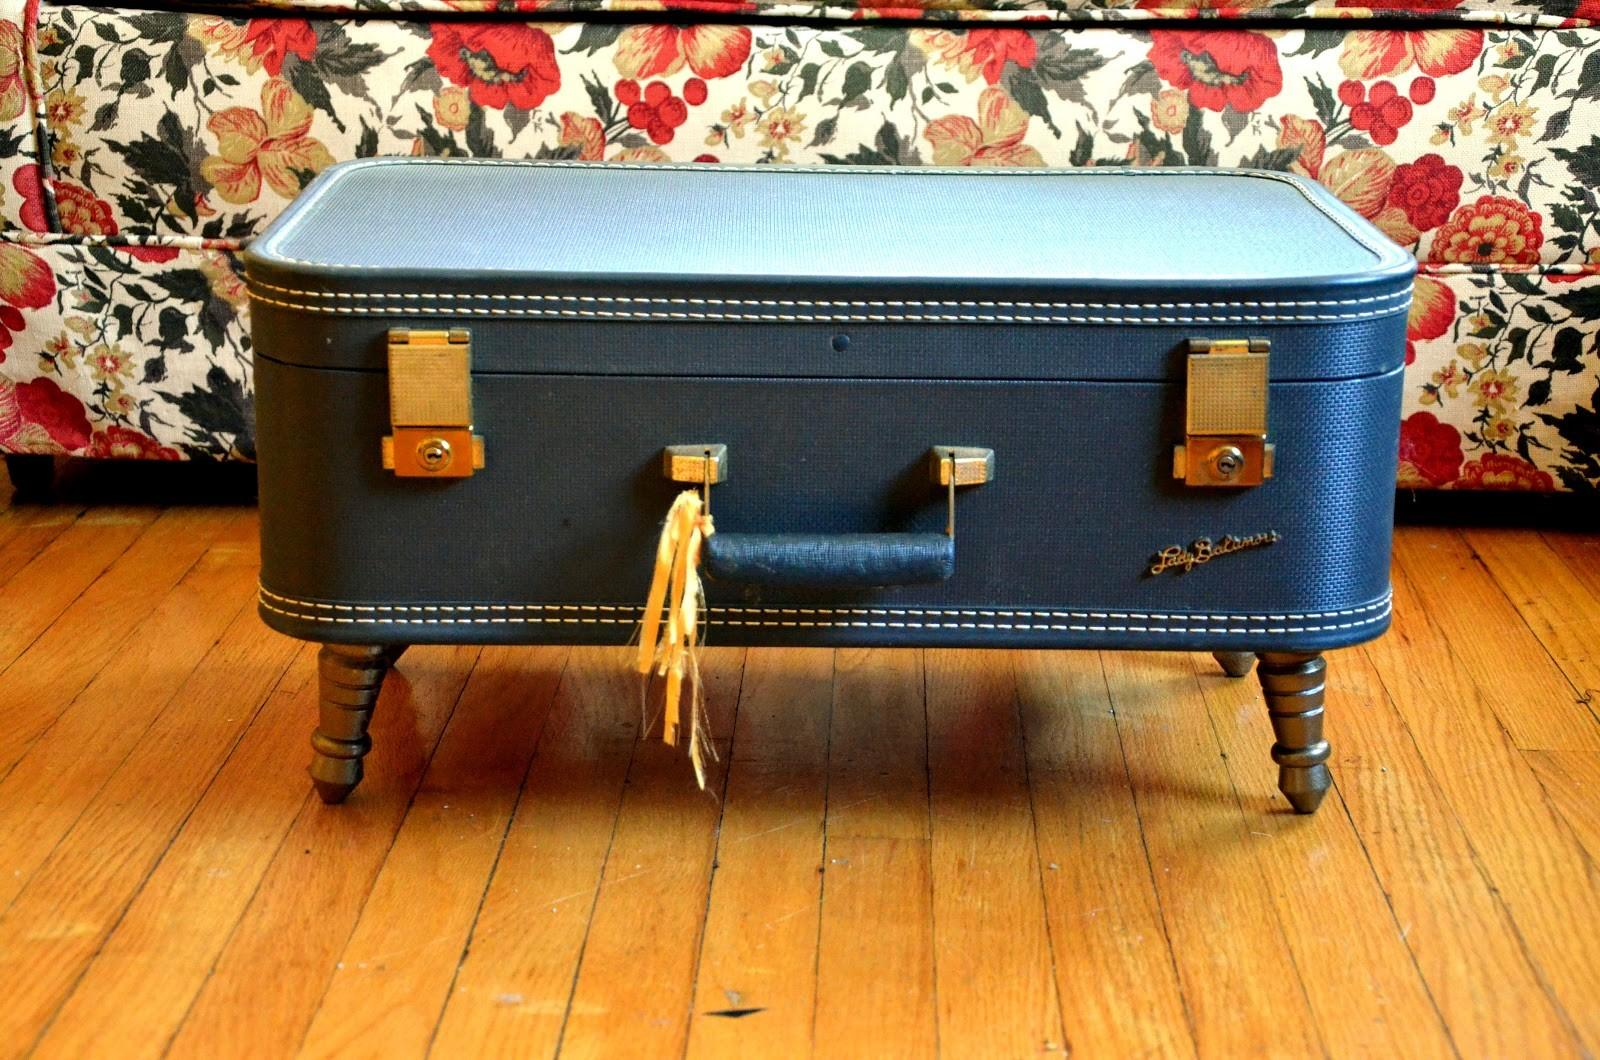 Diy Decor Ingenious Ways Upcycle Old Suitcases Style